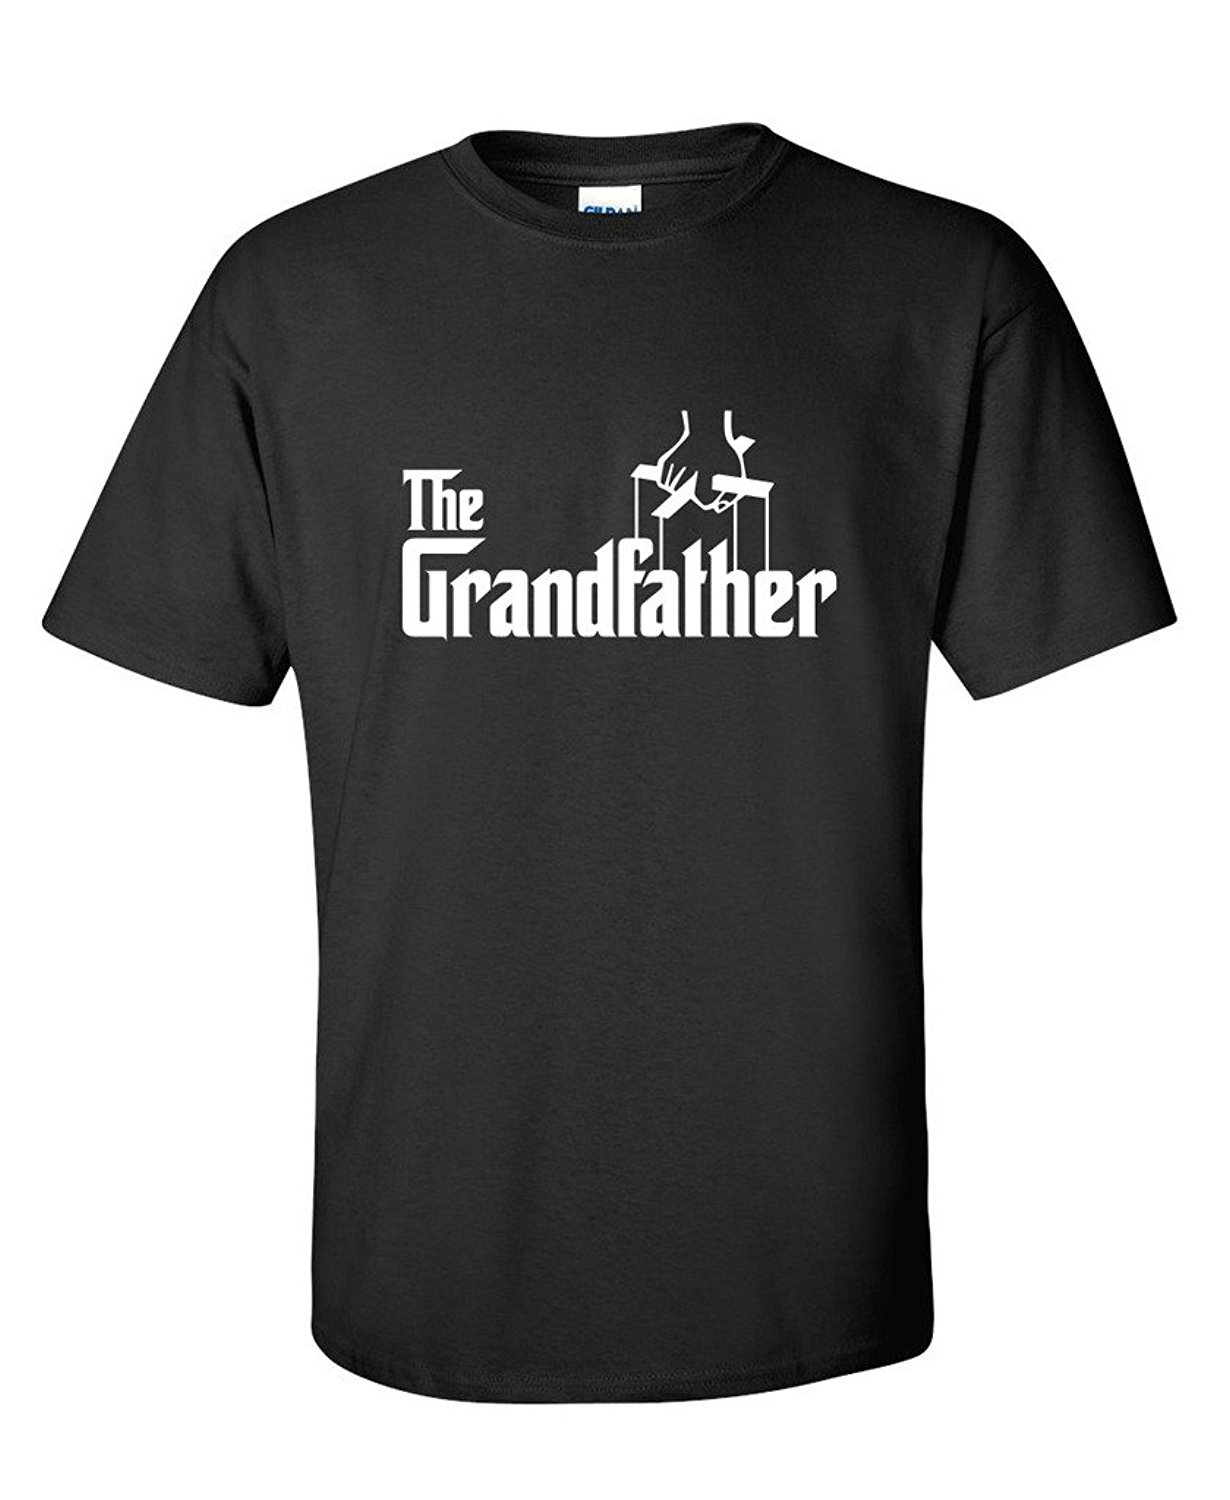 Gildan New Arrival Men T Shirt New O Neck Tee Shirt Short Sleeve The Grandfather Fathers Day Gift for Grandpa T Shirt